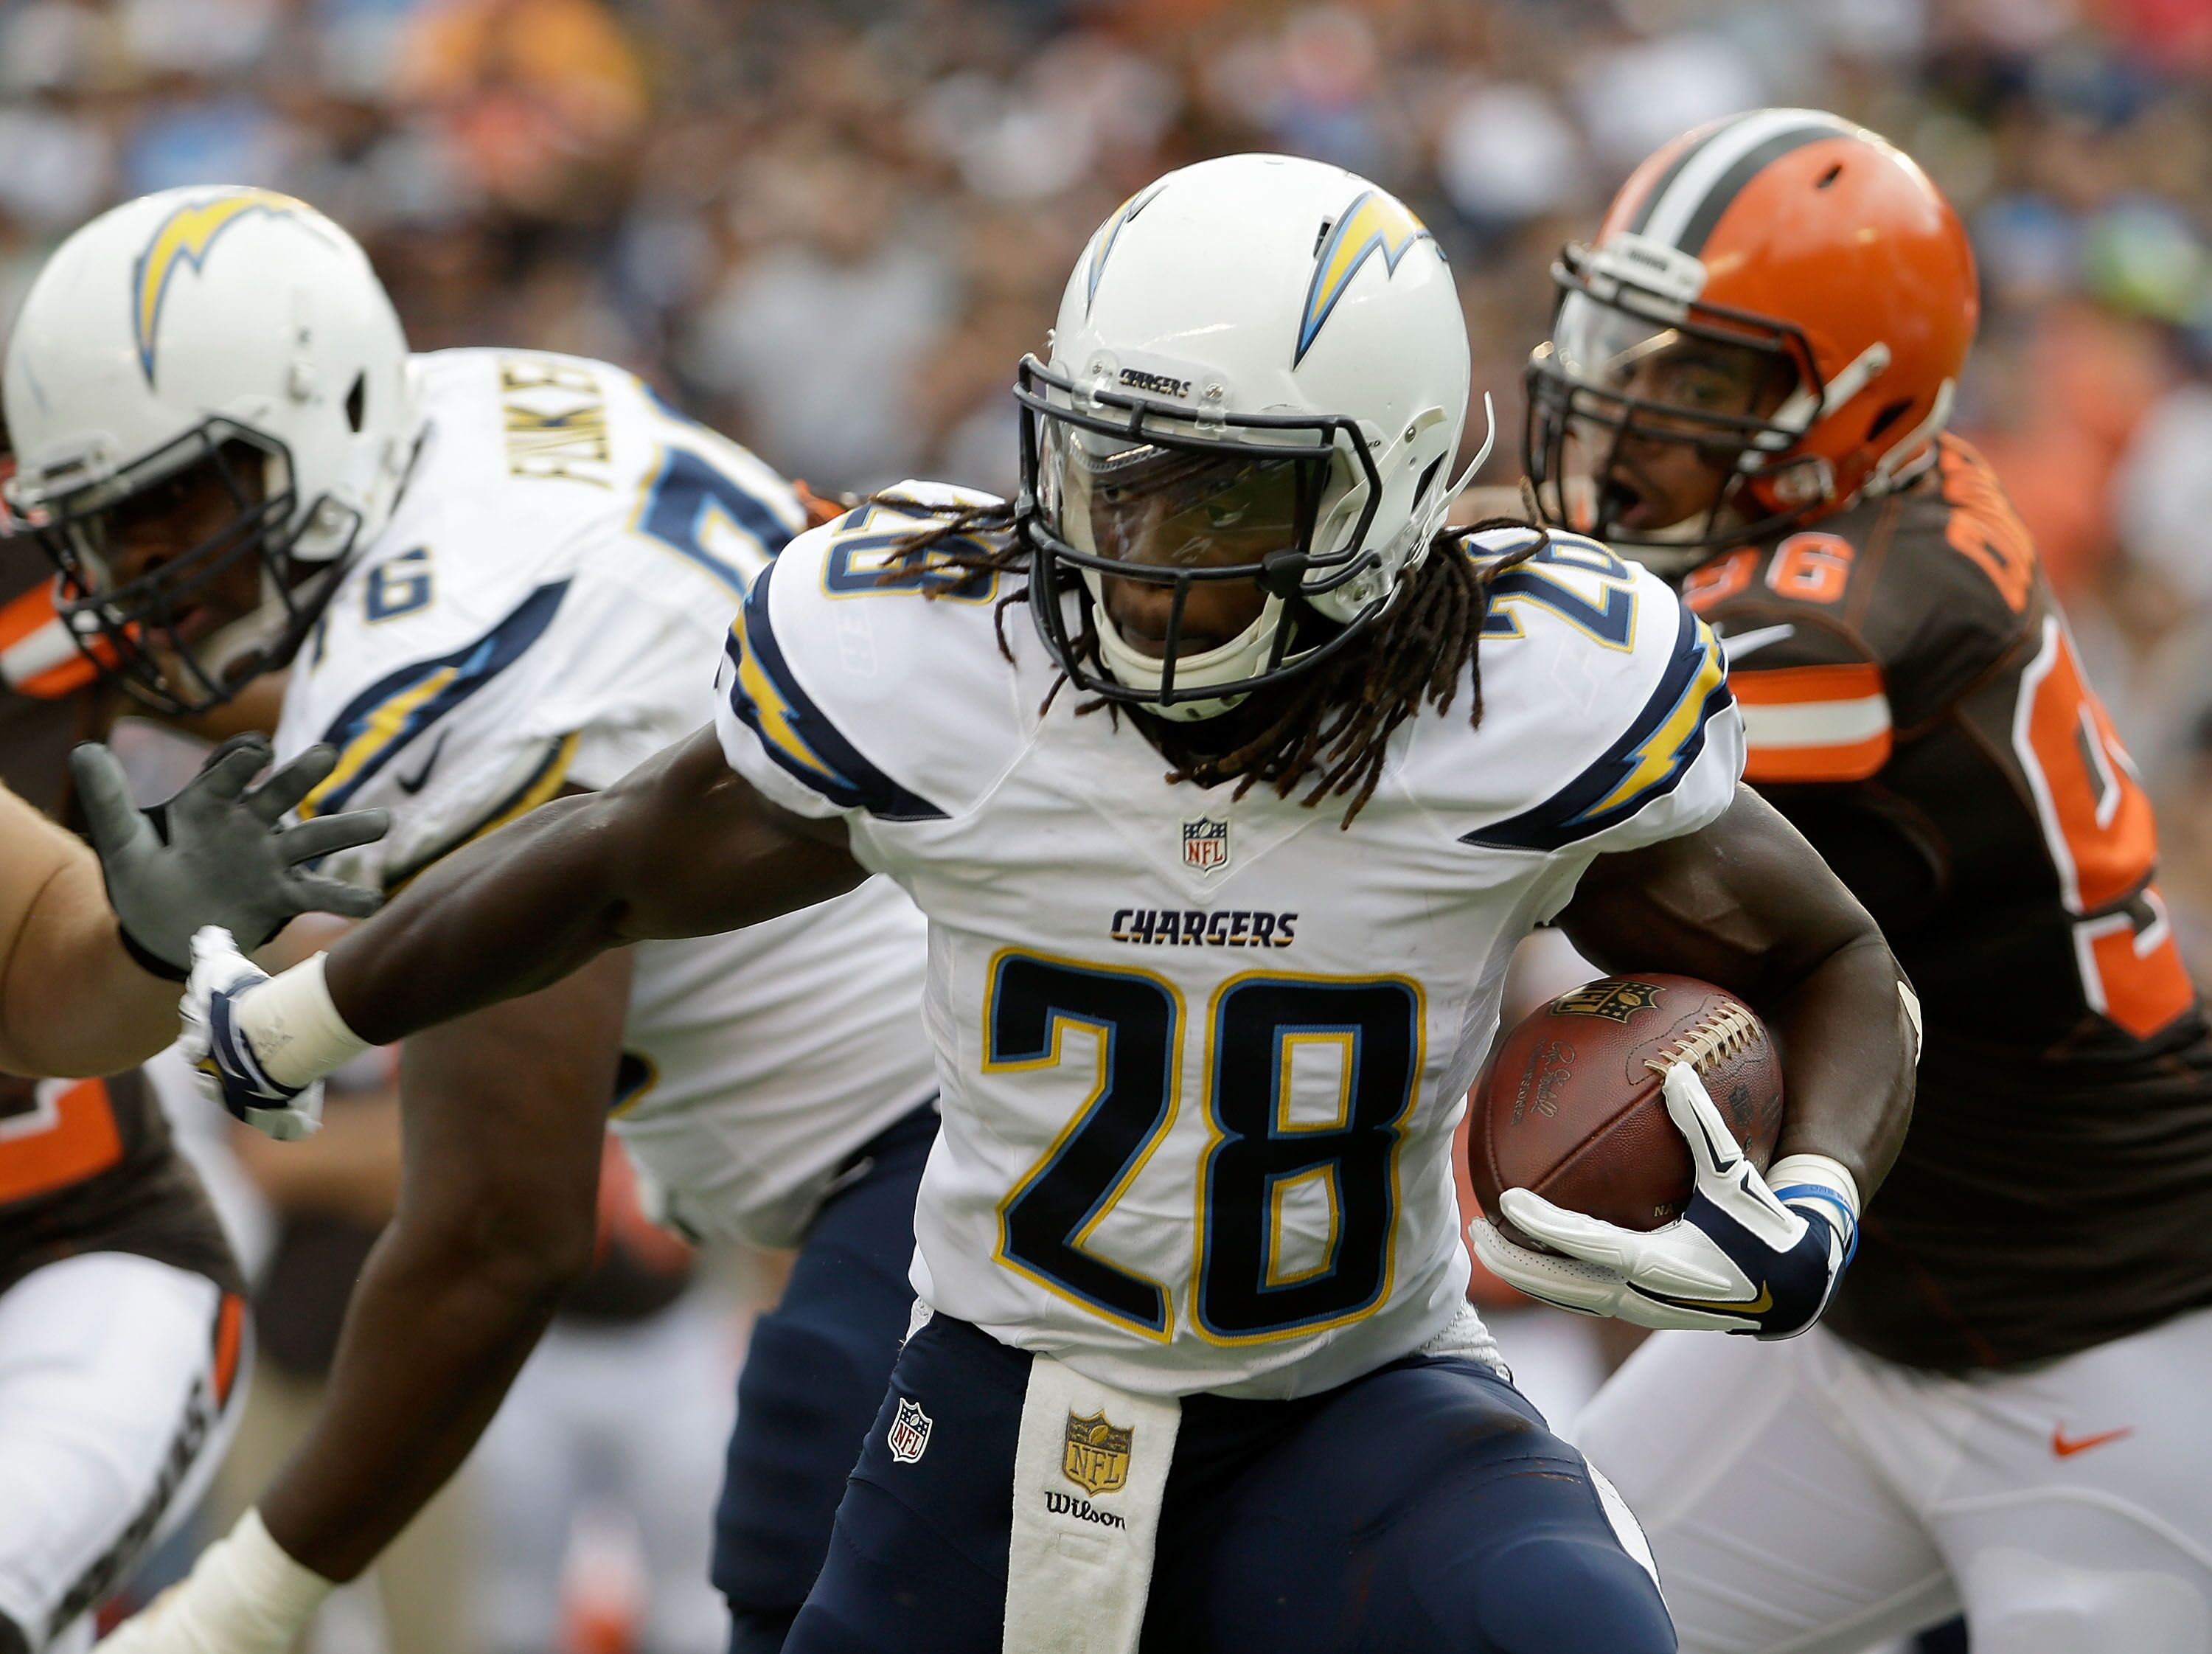 Browns Vs Chargers Preview Score Prediction For Week 13